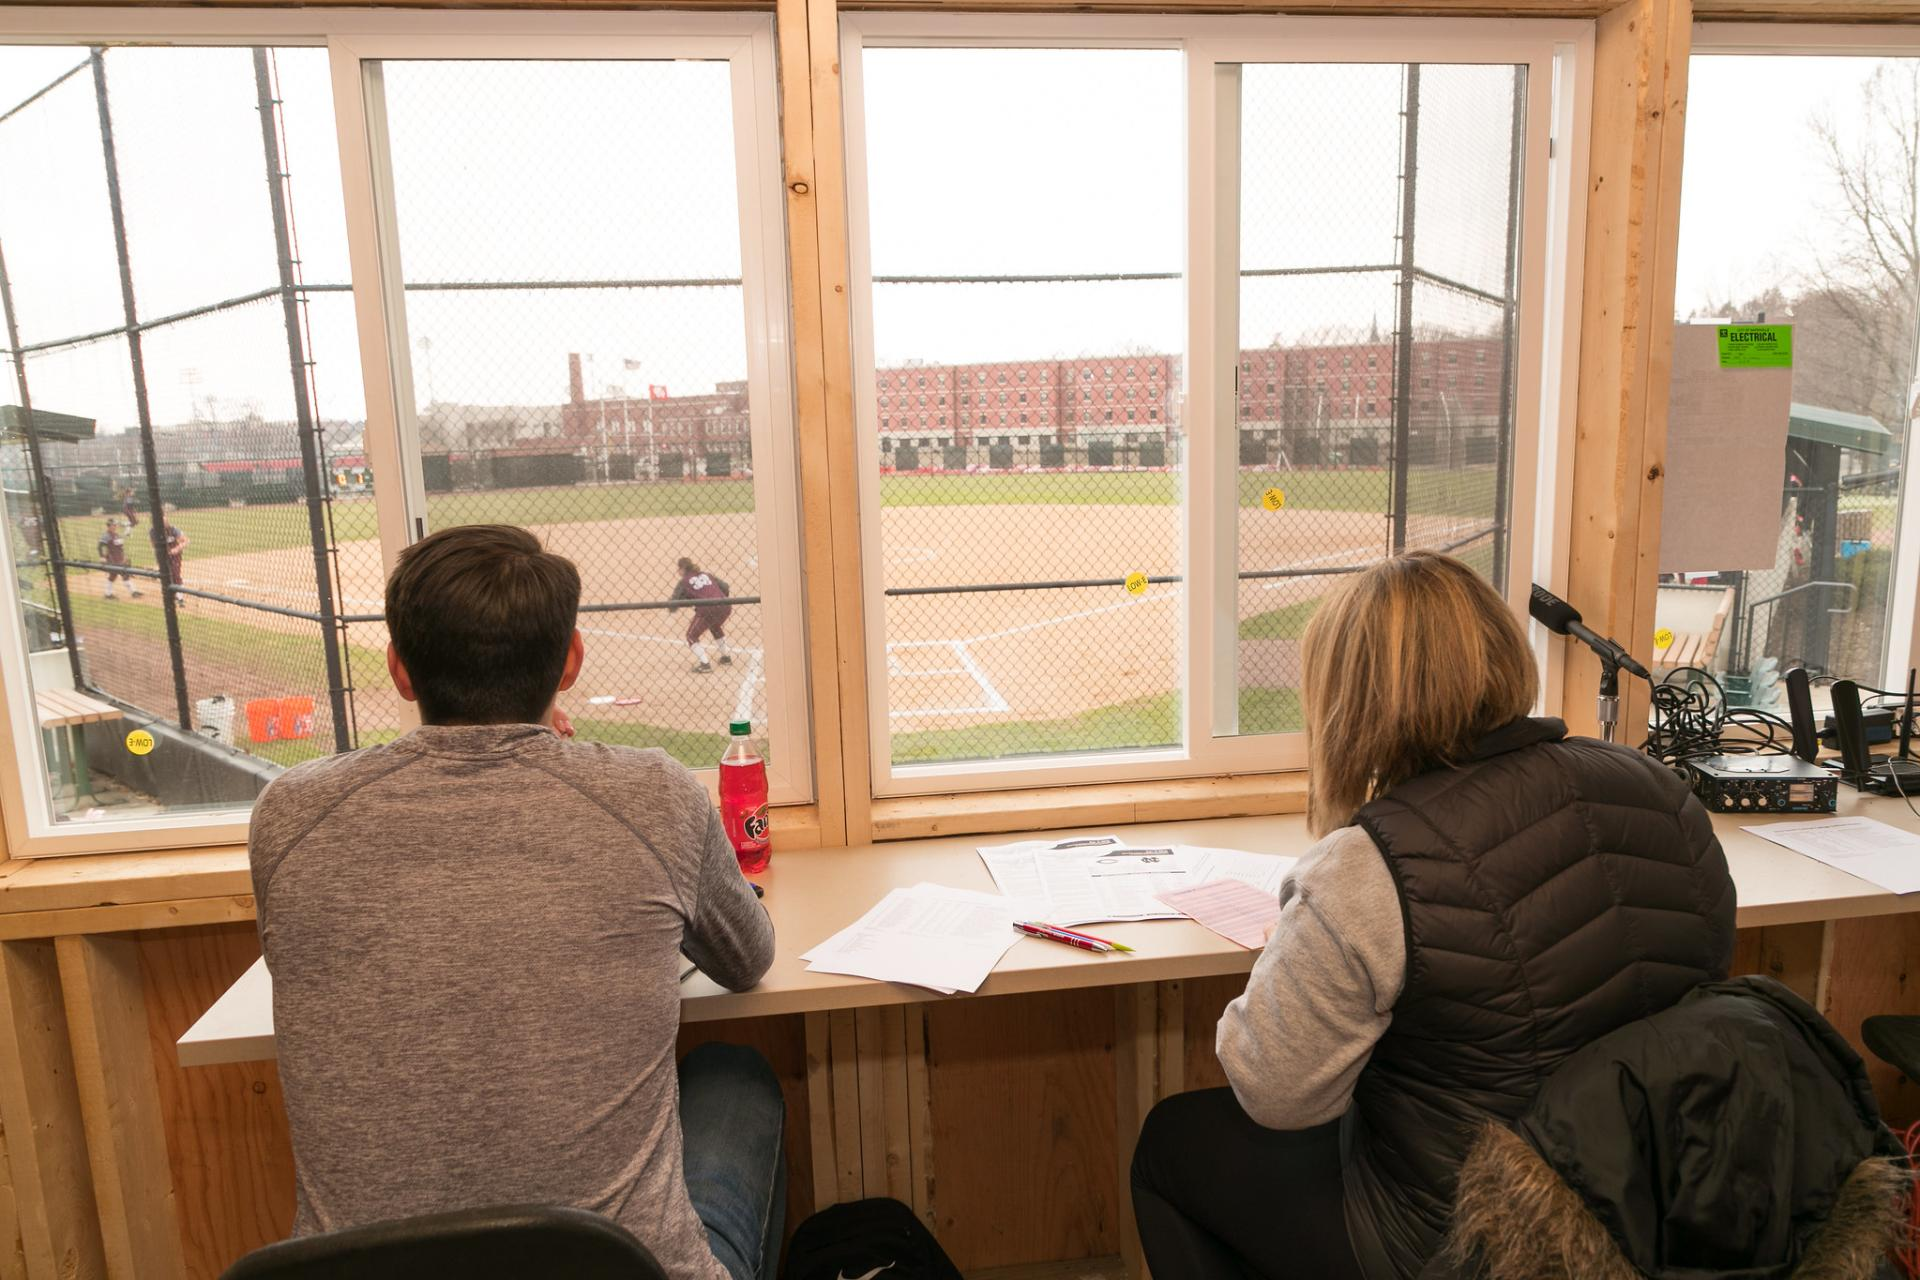 North Central students working inside the newly-donated press box at Shanower Family Field.